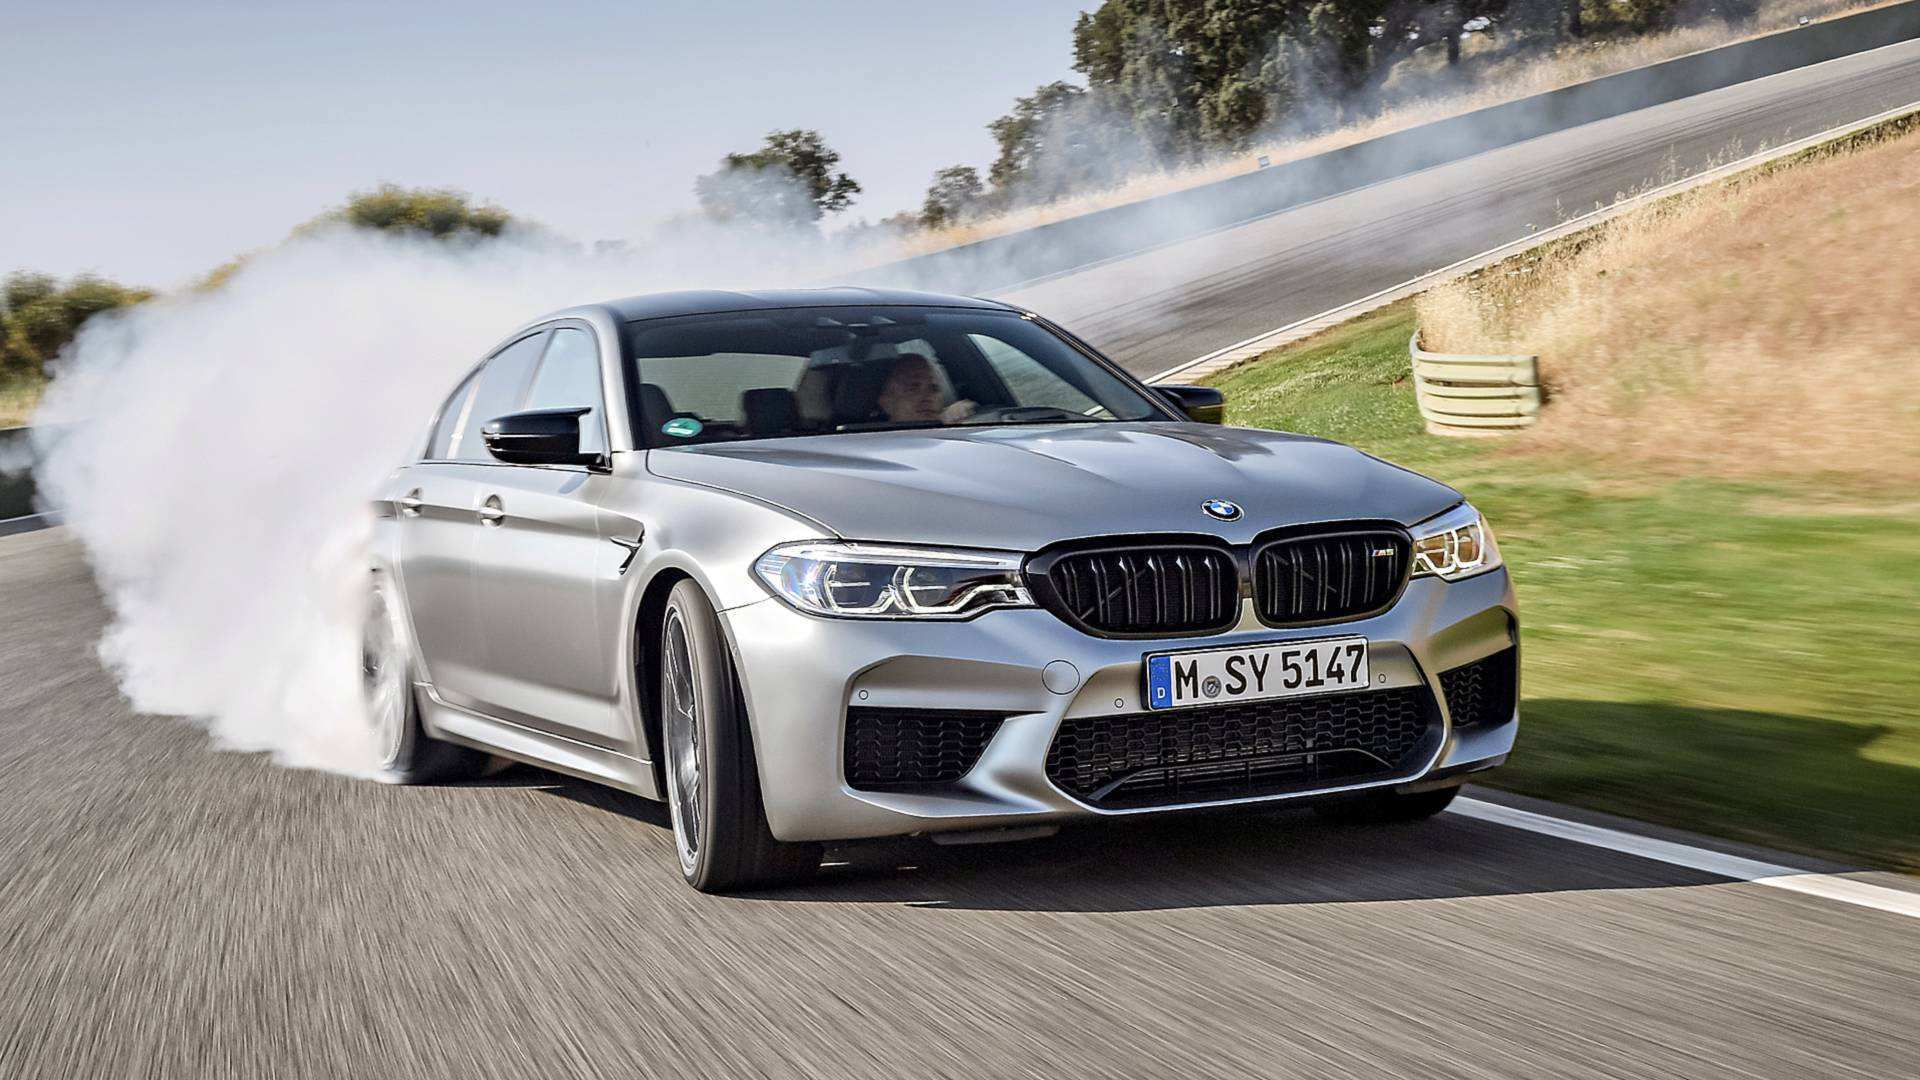 43 All New Best Gt Bmw 2019 First Drive Specs with Best Gt Bmw 2019 First Drive